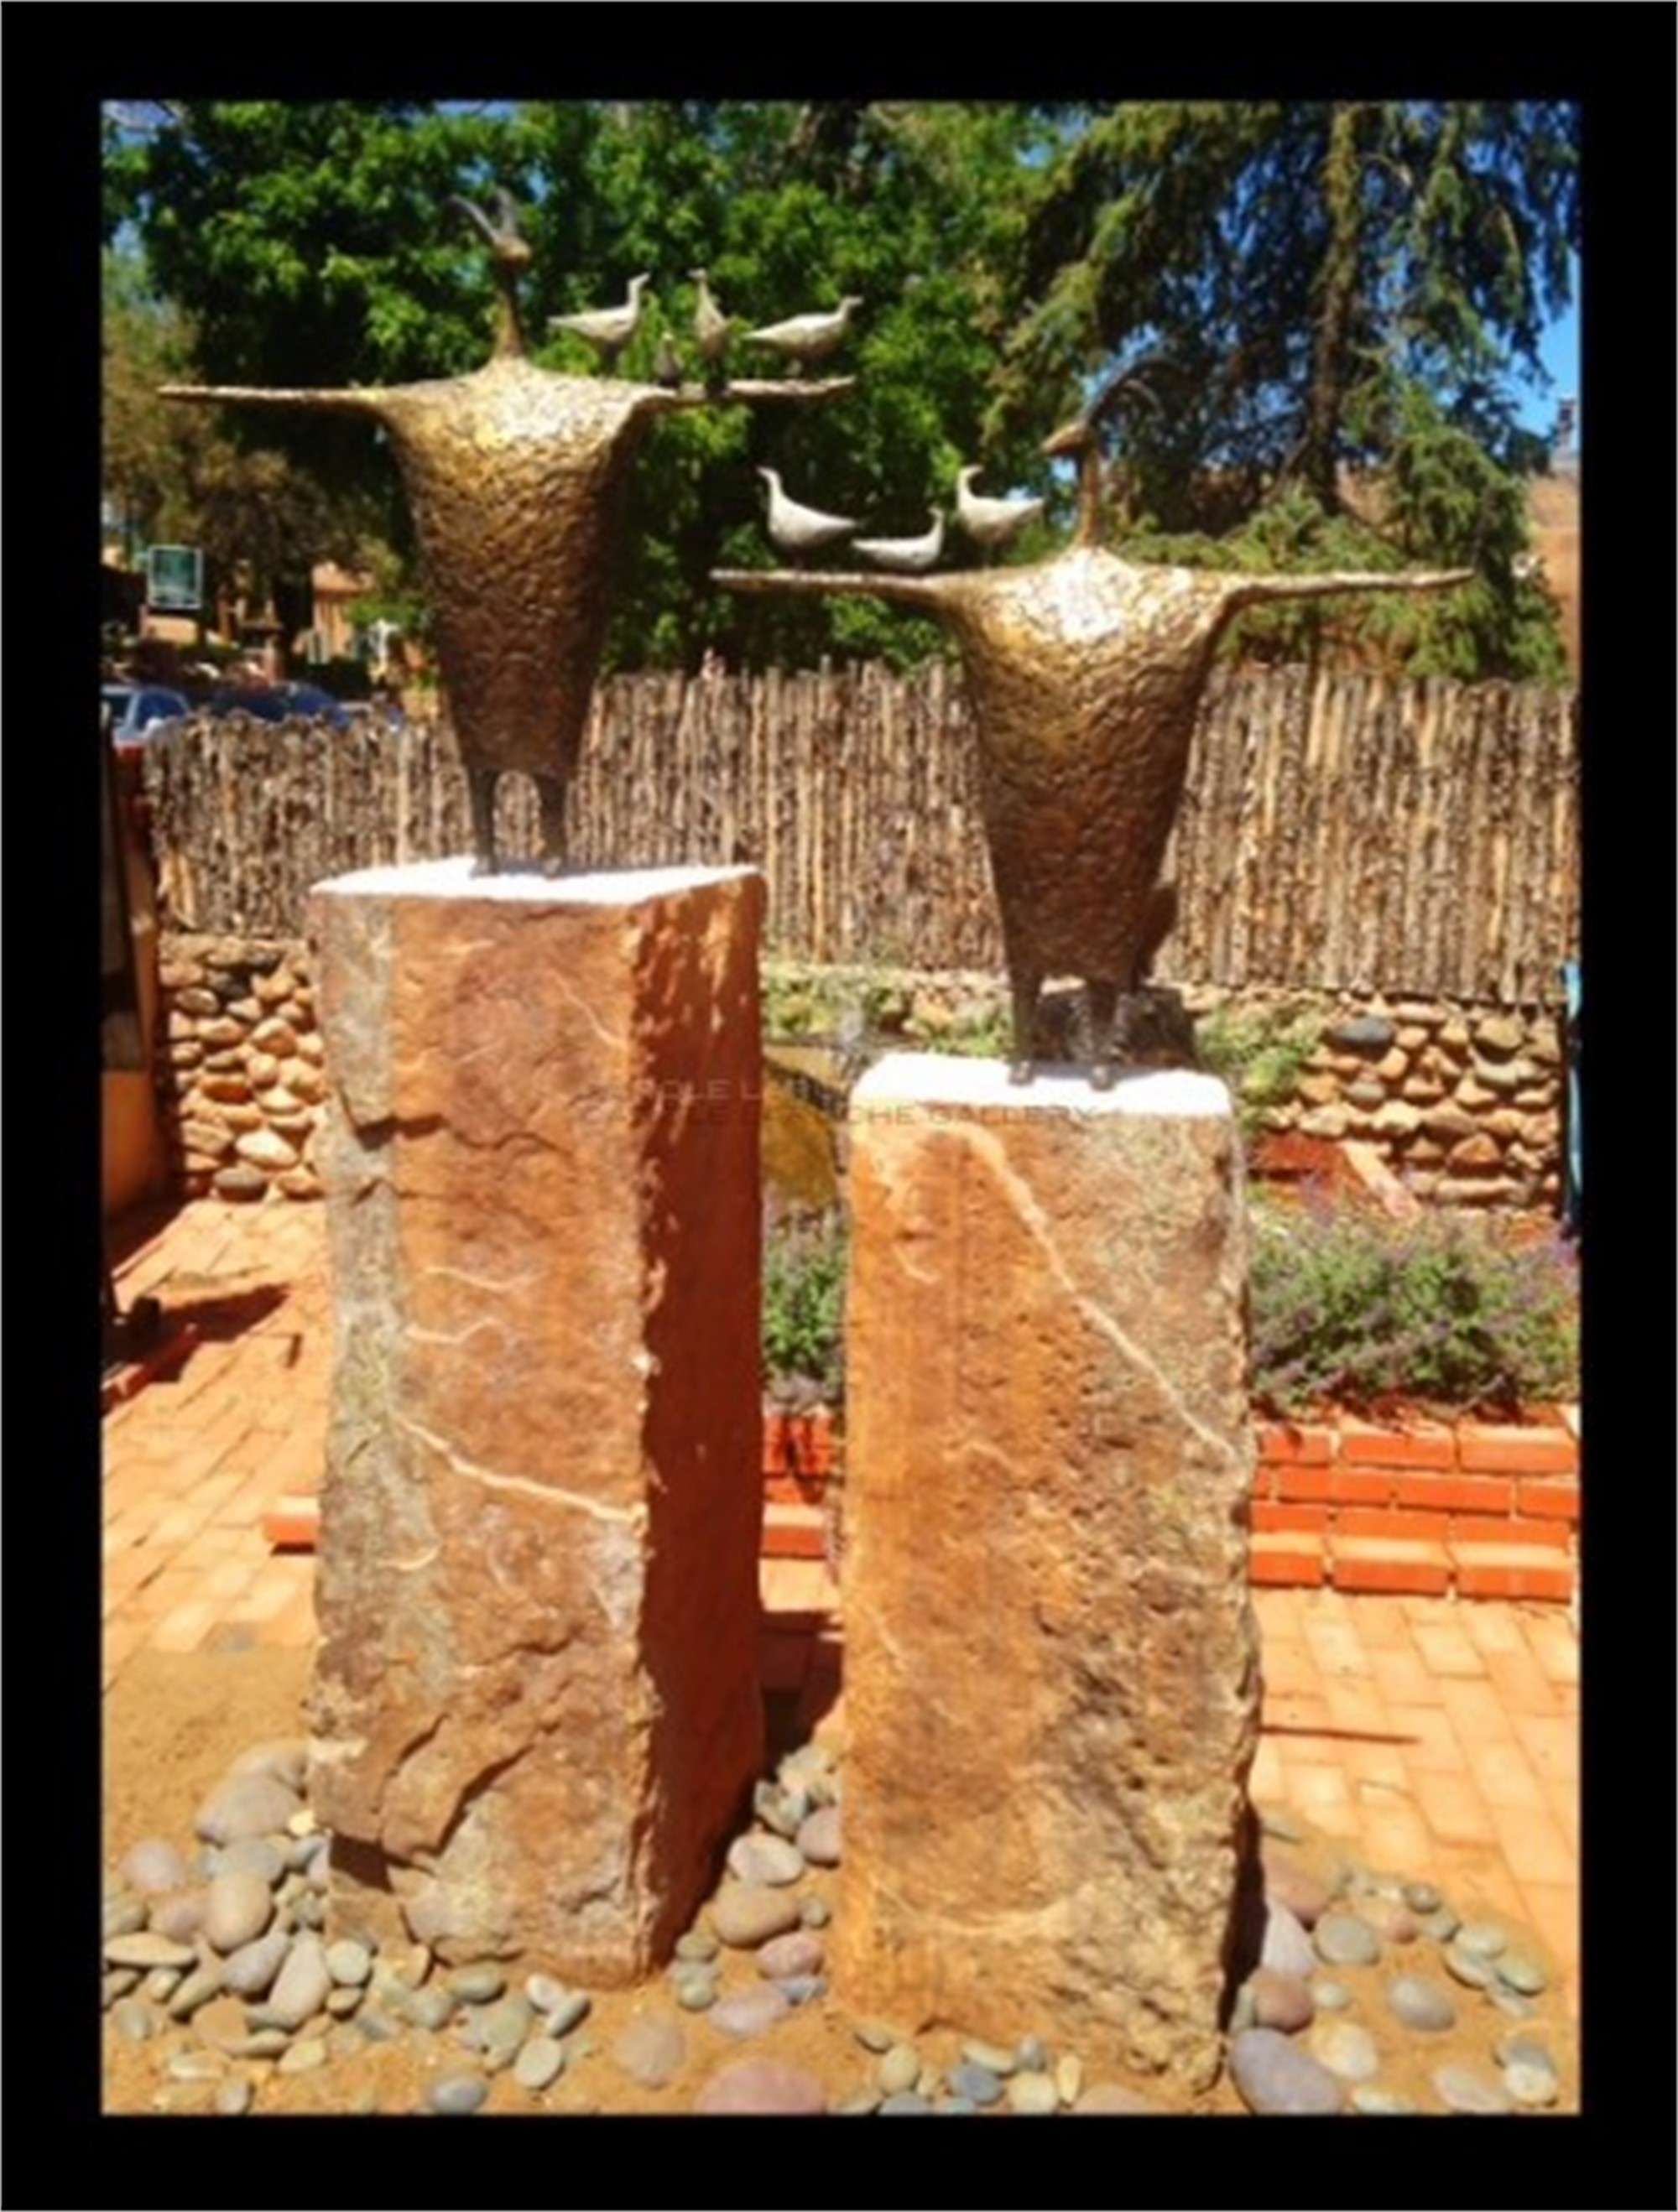 "PROTECTORS OF THE MIGRATION Sculptures 34""x33""x10"" $6000 each Two Rock Pedestals $7500 OR Two Sculptures with Two Rock Pedestals $18,500. May be purchased separately or together. by Jill Shwaiko"